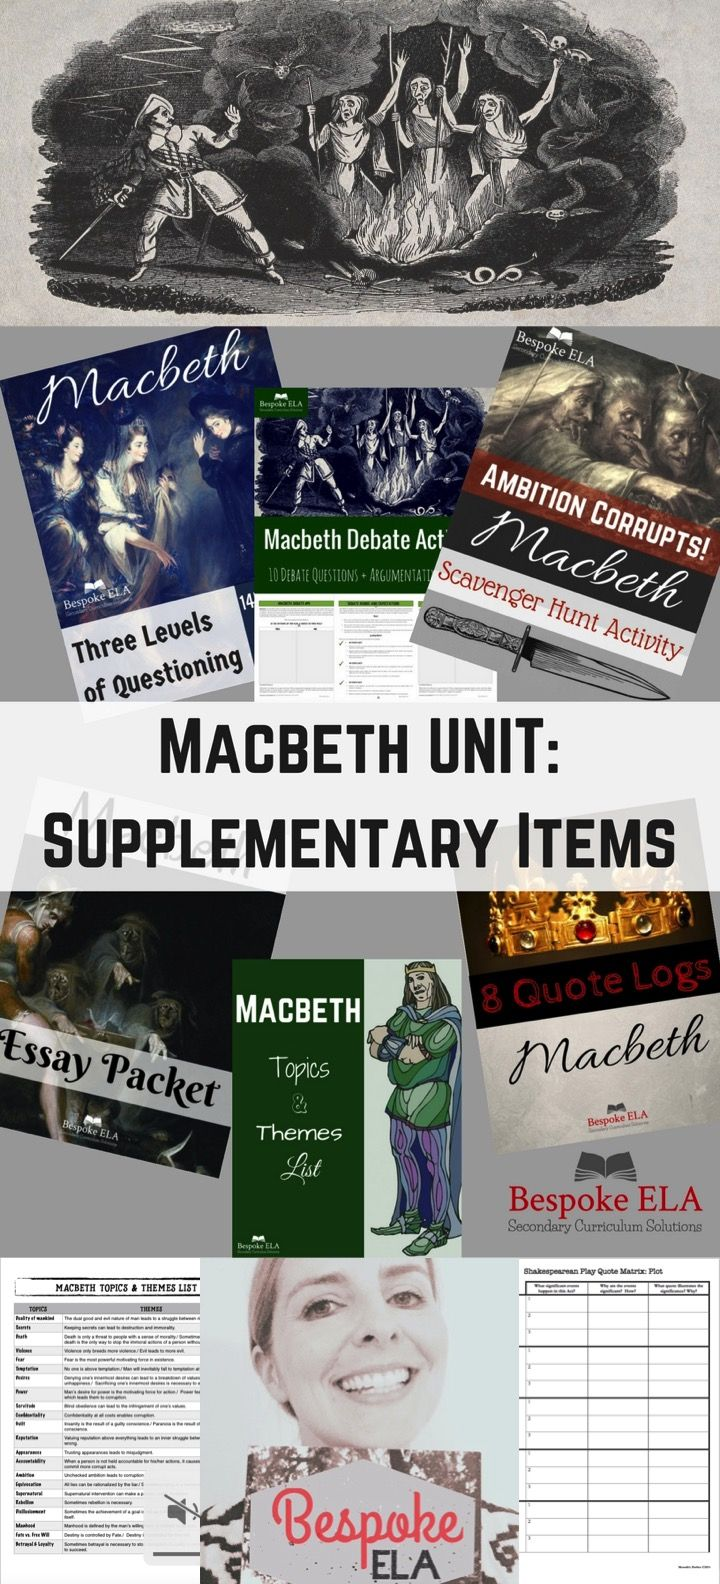 essay questions on macbeth essays on macbeth macbeth theme essay  best ideas about macbeth analysis shakespeare macbeth bundle supplementary materials for any macbeth unit macbeth courage essay